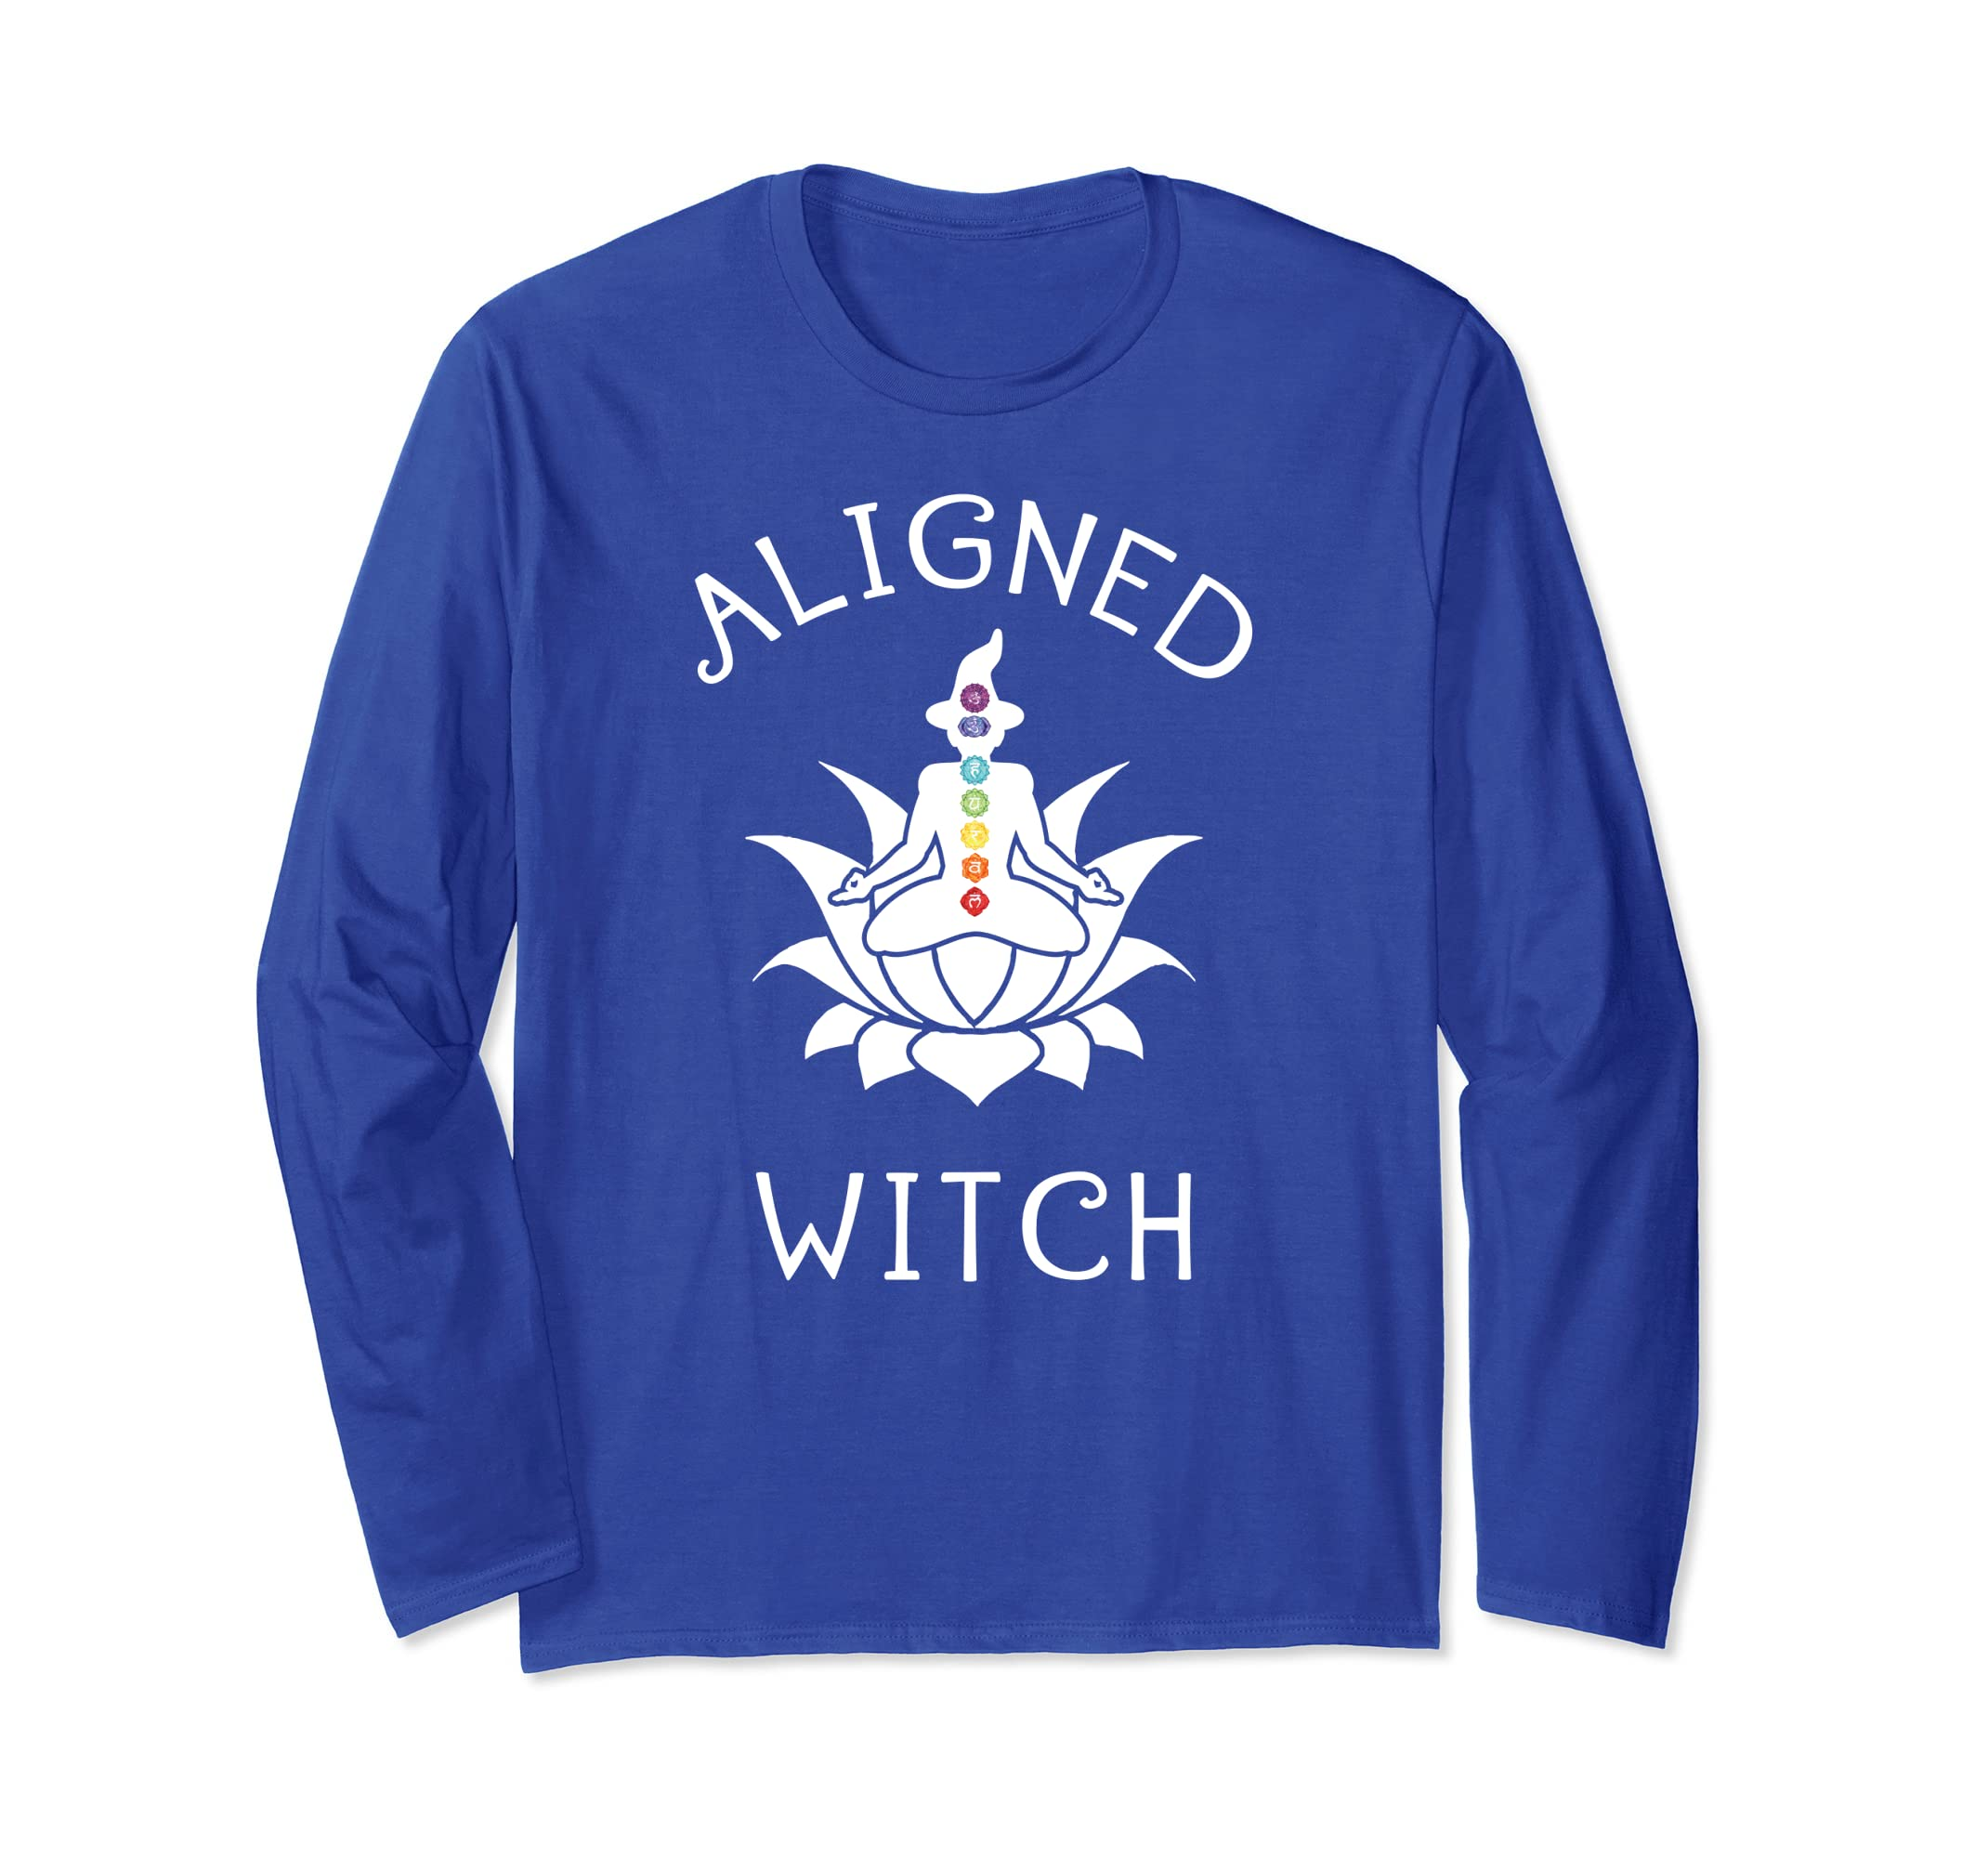 Aligned Witch Yoga Chakras Funny Halloween Long Sleeve Shirt-Rose